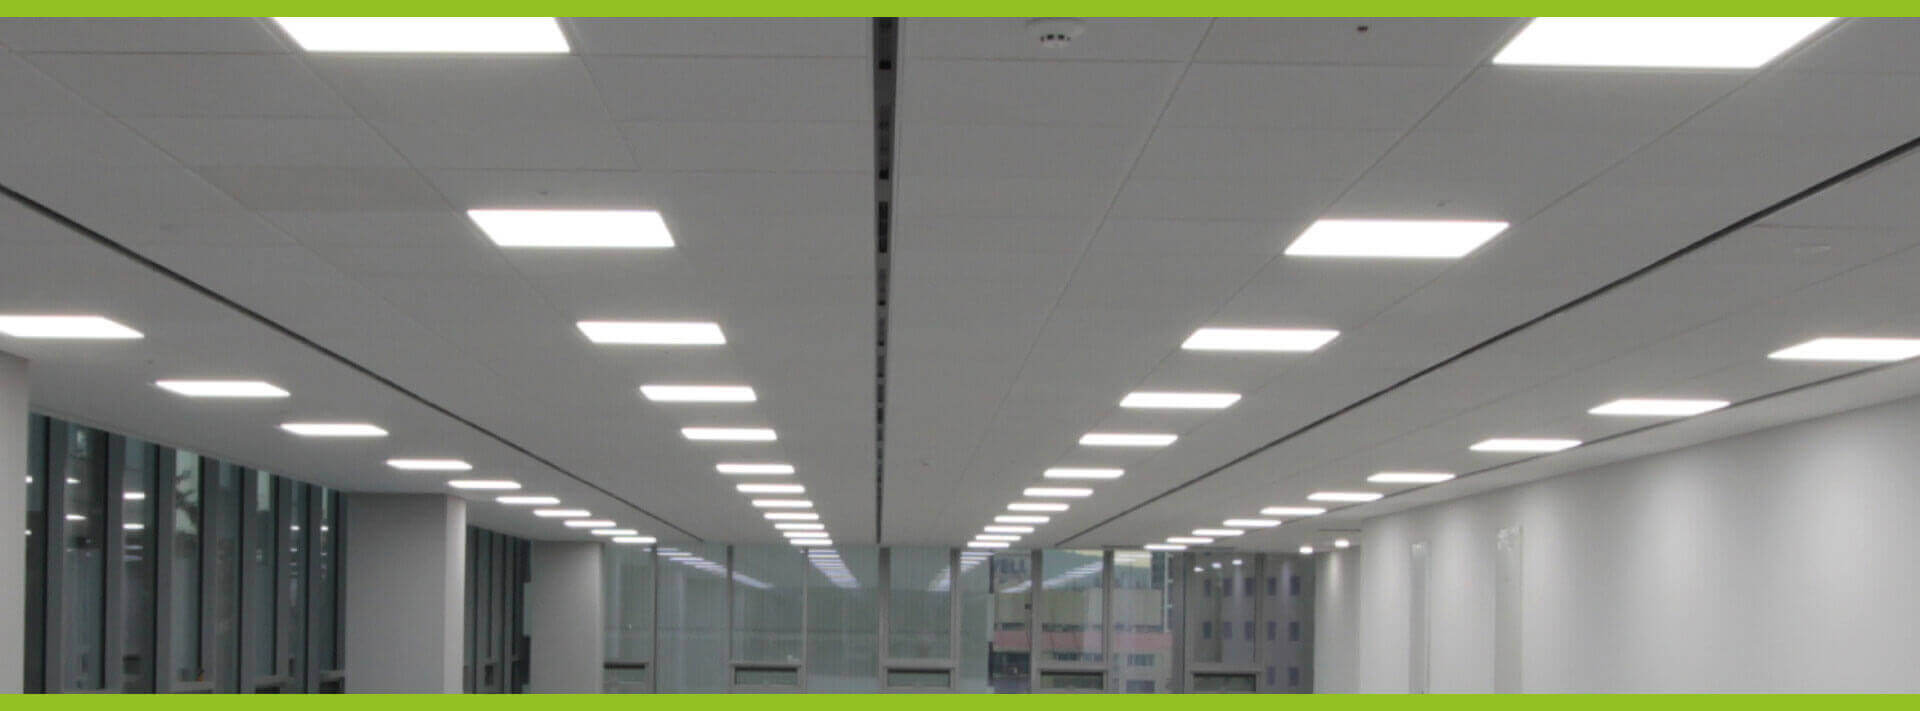 VCP Ecolighting | Lámparas LED